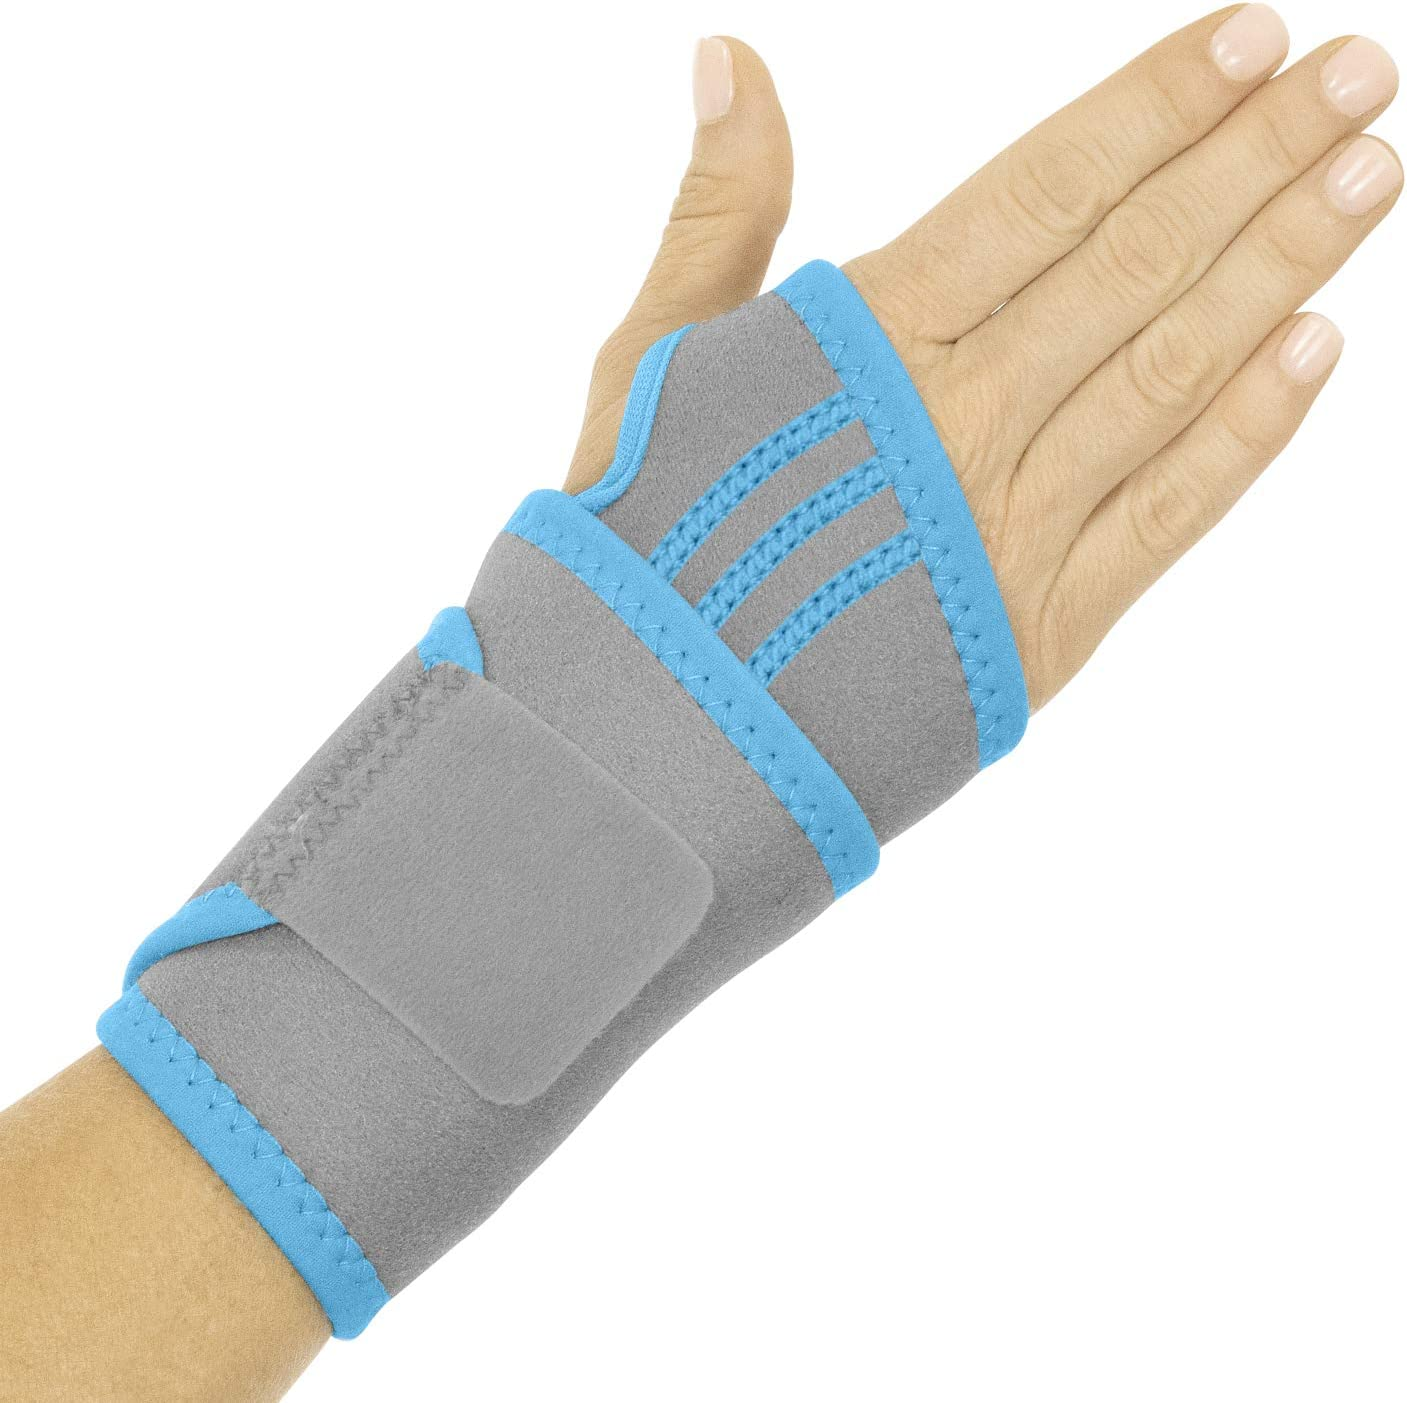 Arctic Flex Wrist Ice Pack - Refreezable Gel Compression Support - Flexible Hot/Cold Brace For Injuries, Rheumatoid, Tendinitis, Swelling and Carpal Tunnel - Reusable for Pain and Muscle Therapy